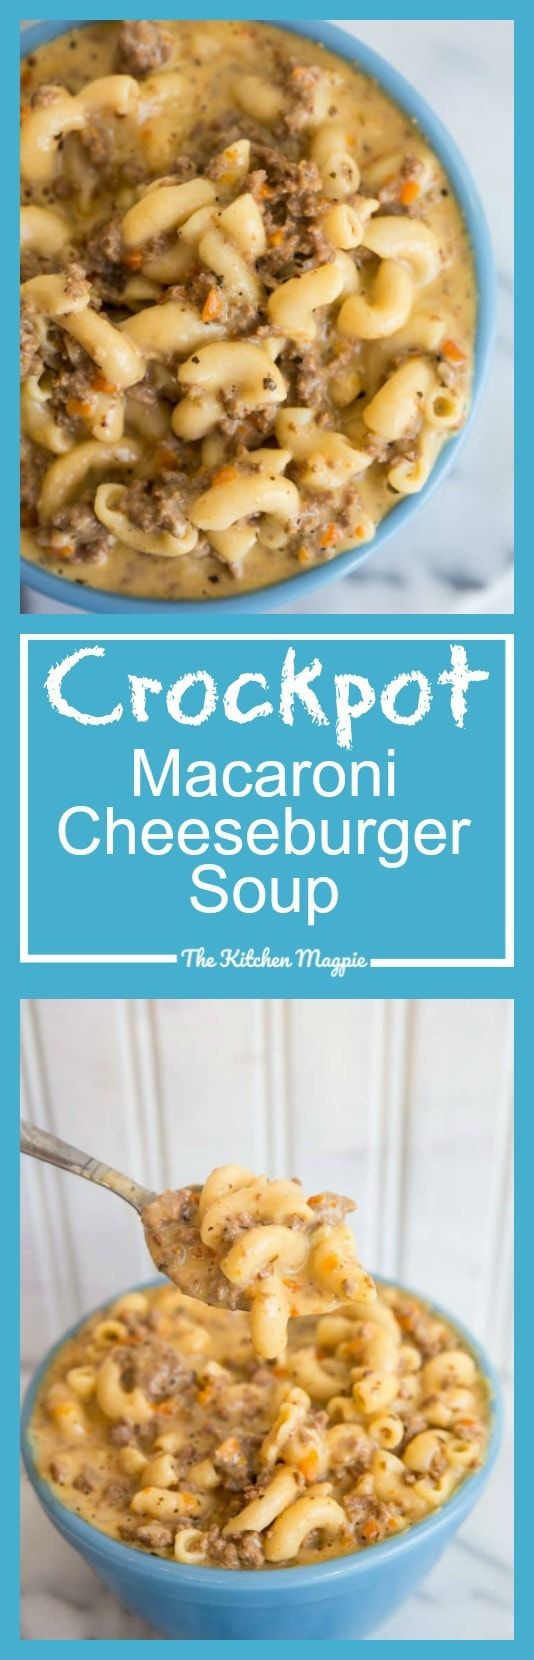 How to make the best Crockpot Macaroni Cheeseburger Soup that you've ever tasted. This is the best soup I have EVER made & it's a new family favourite!